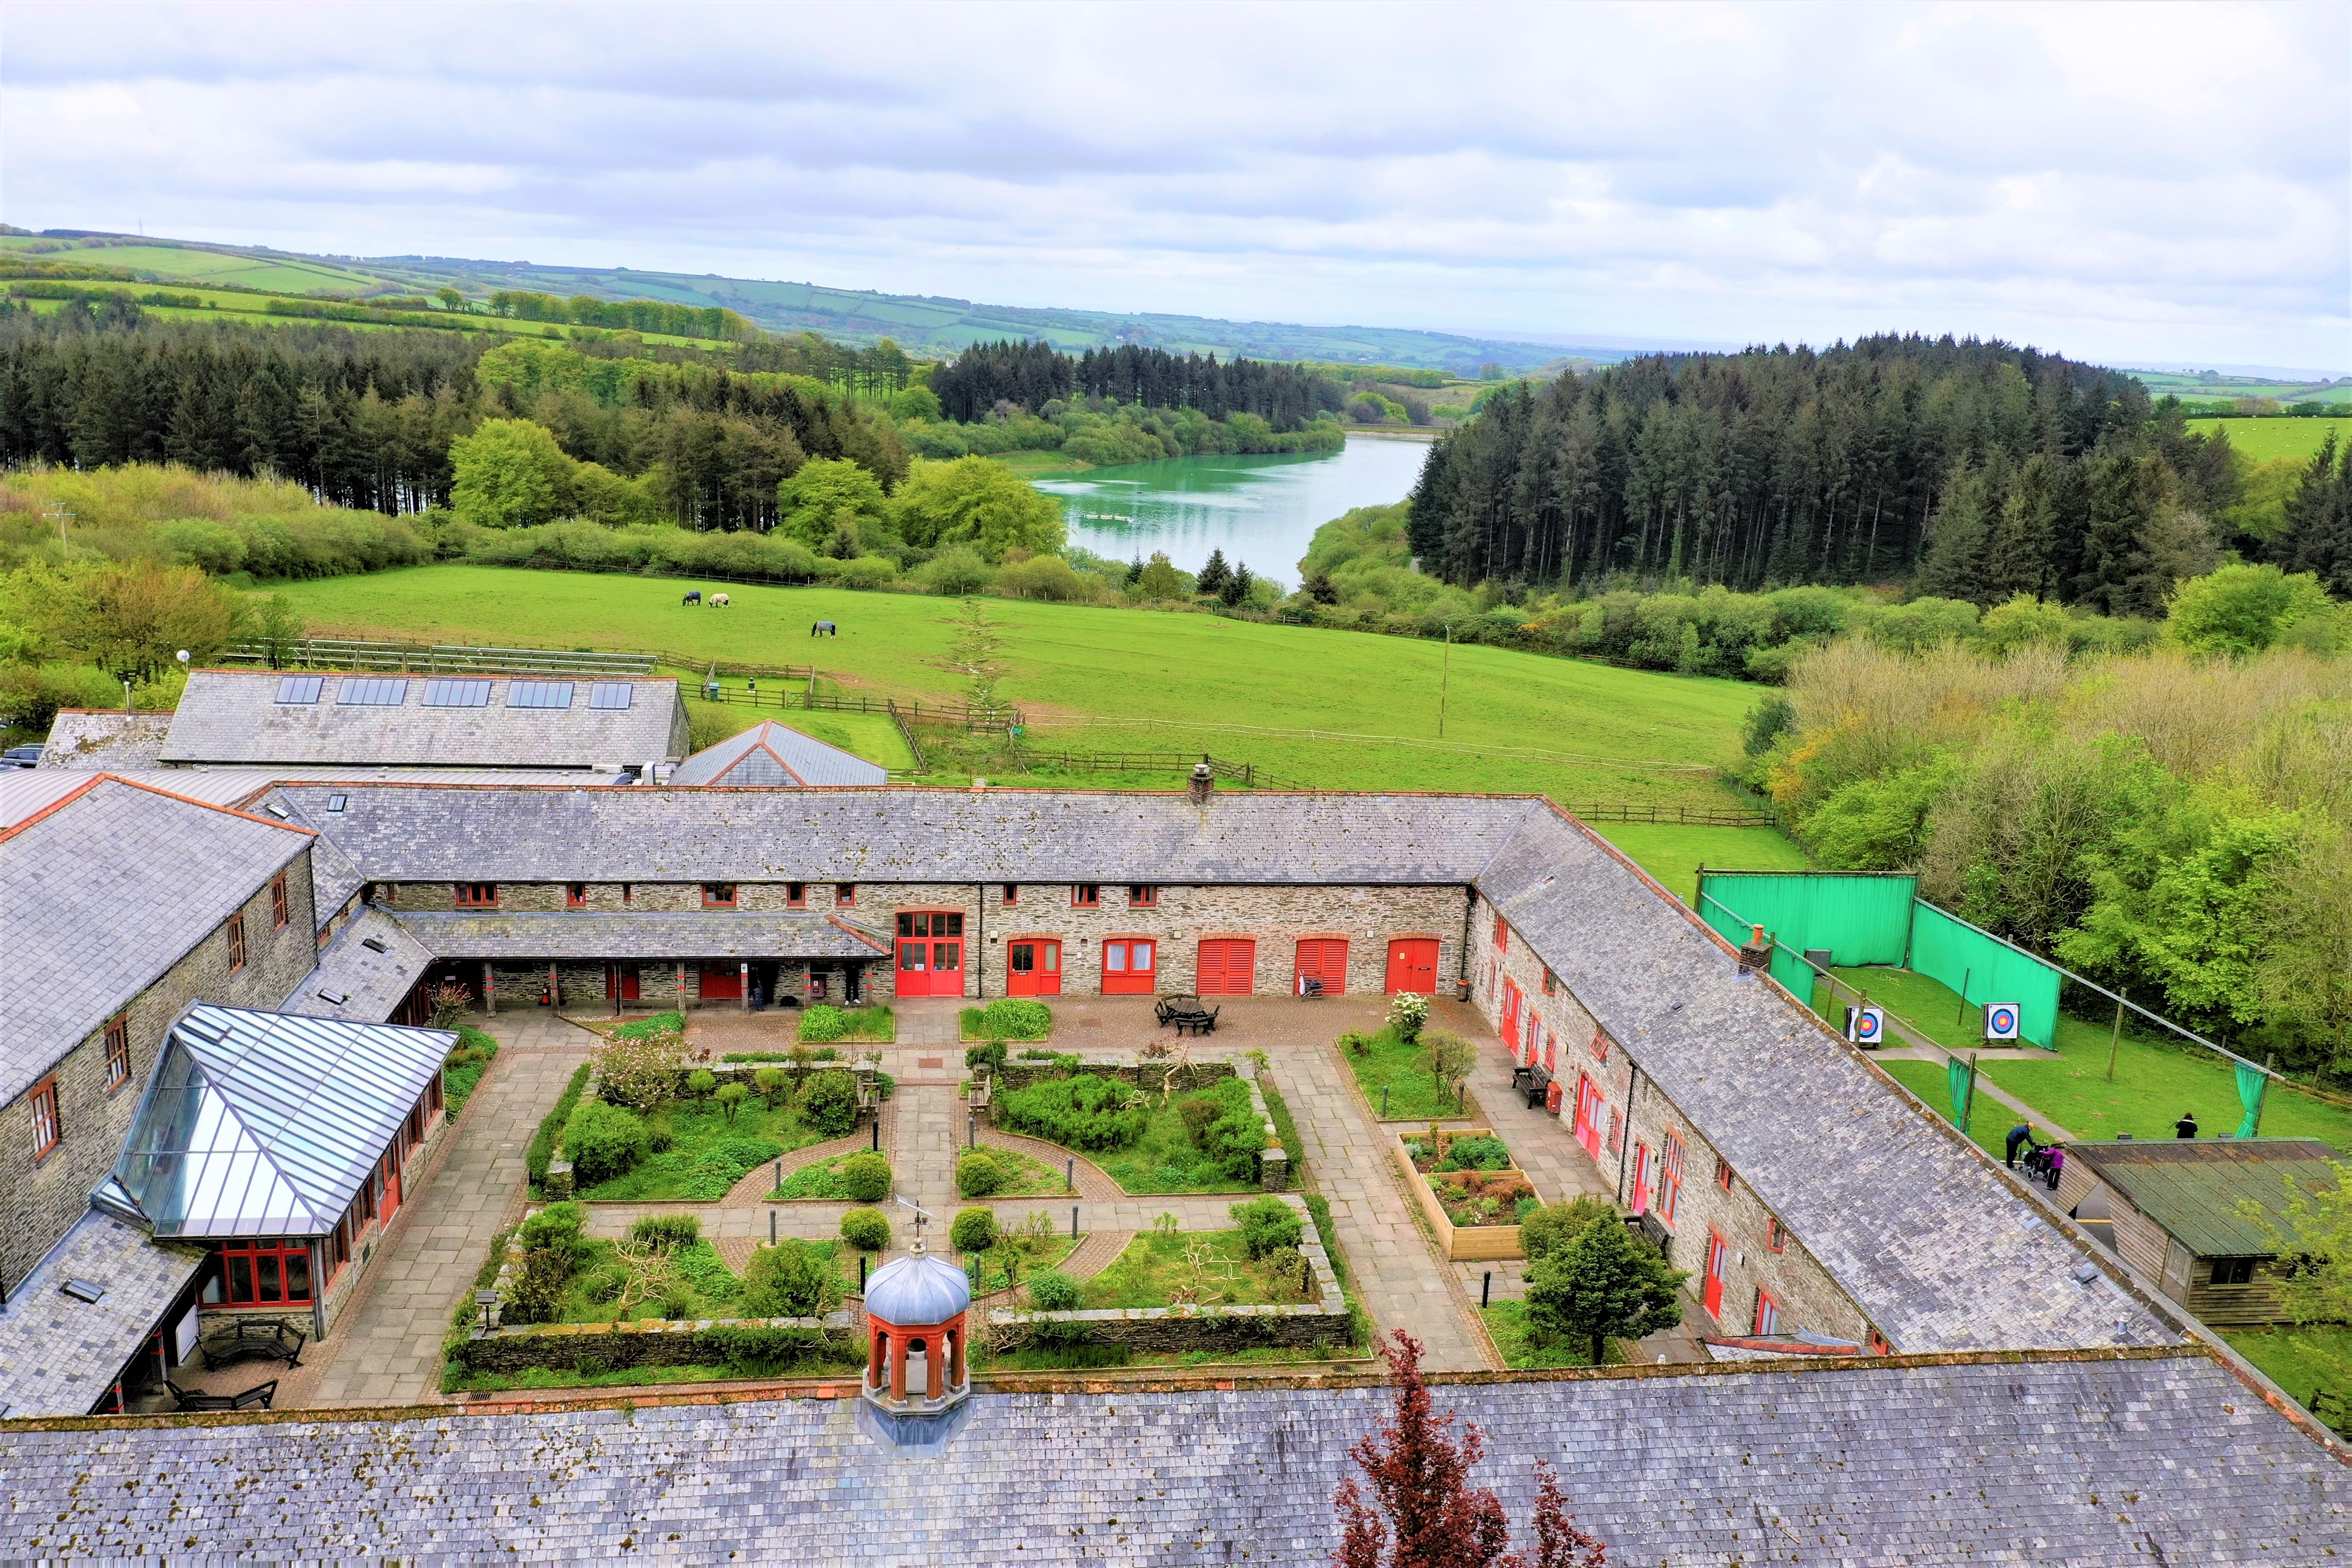 A view of the courtyard, accommodations and lake at Calvert Trust Exmoor